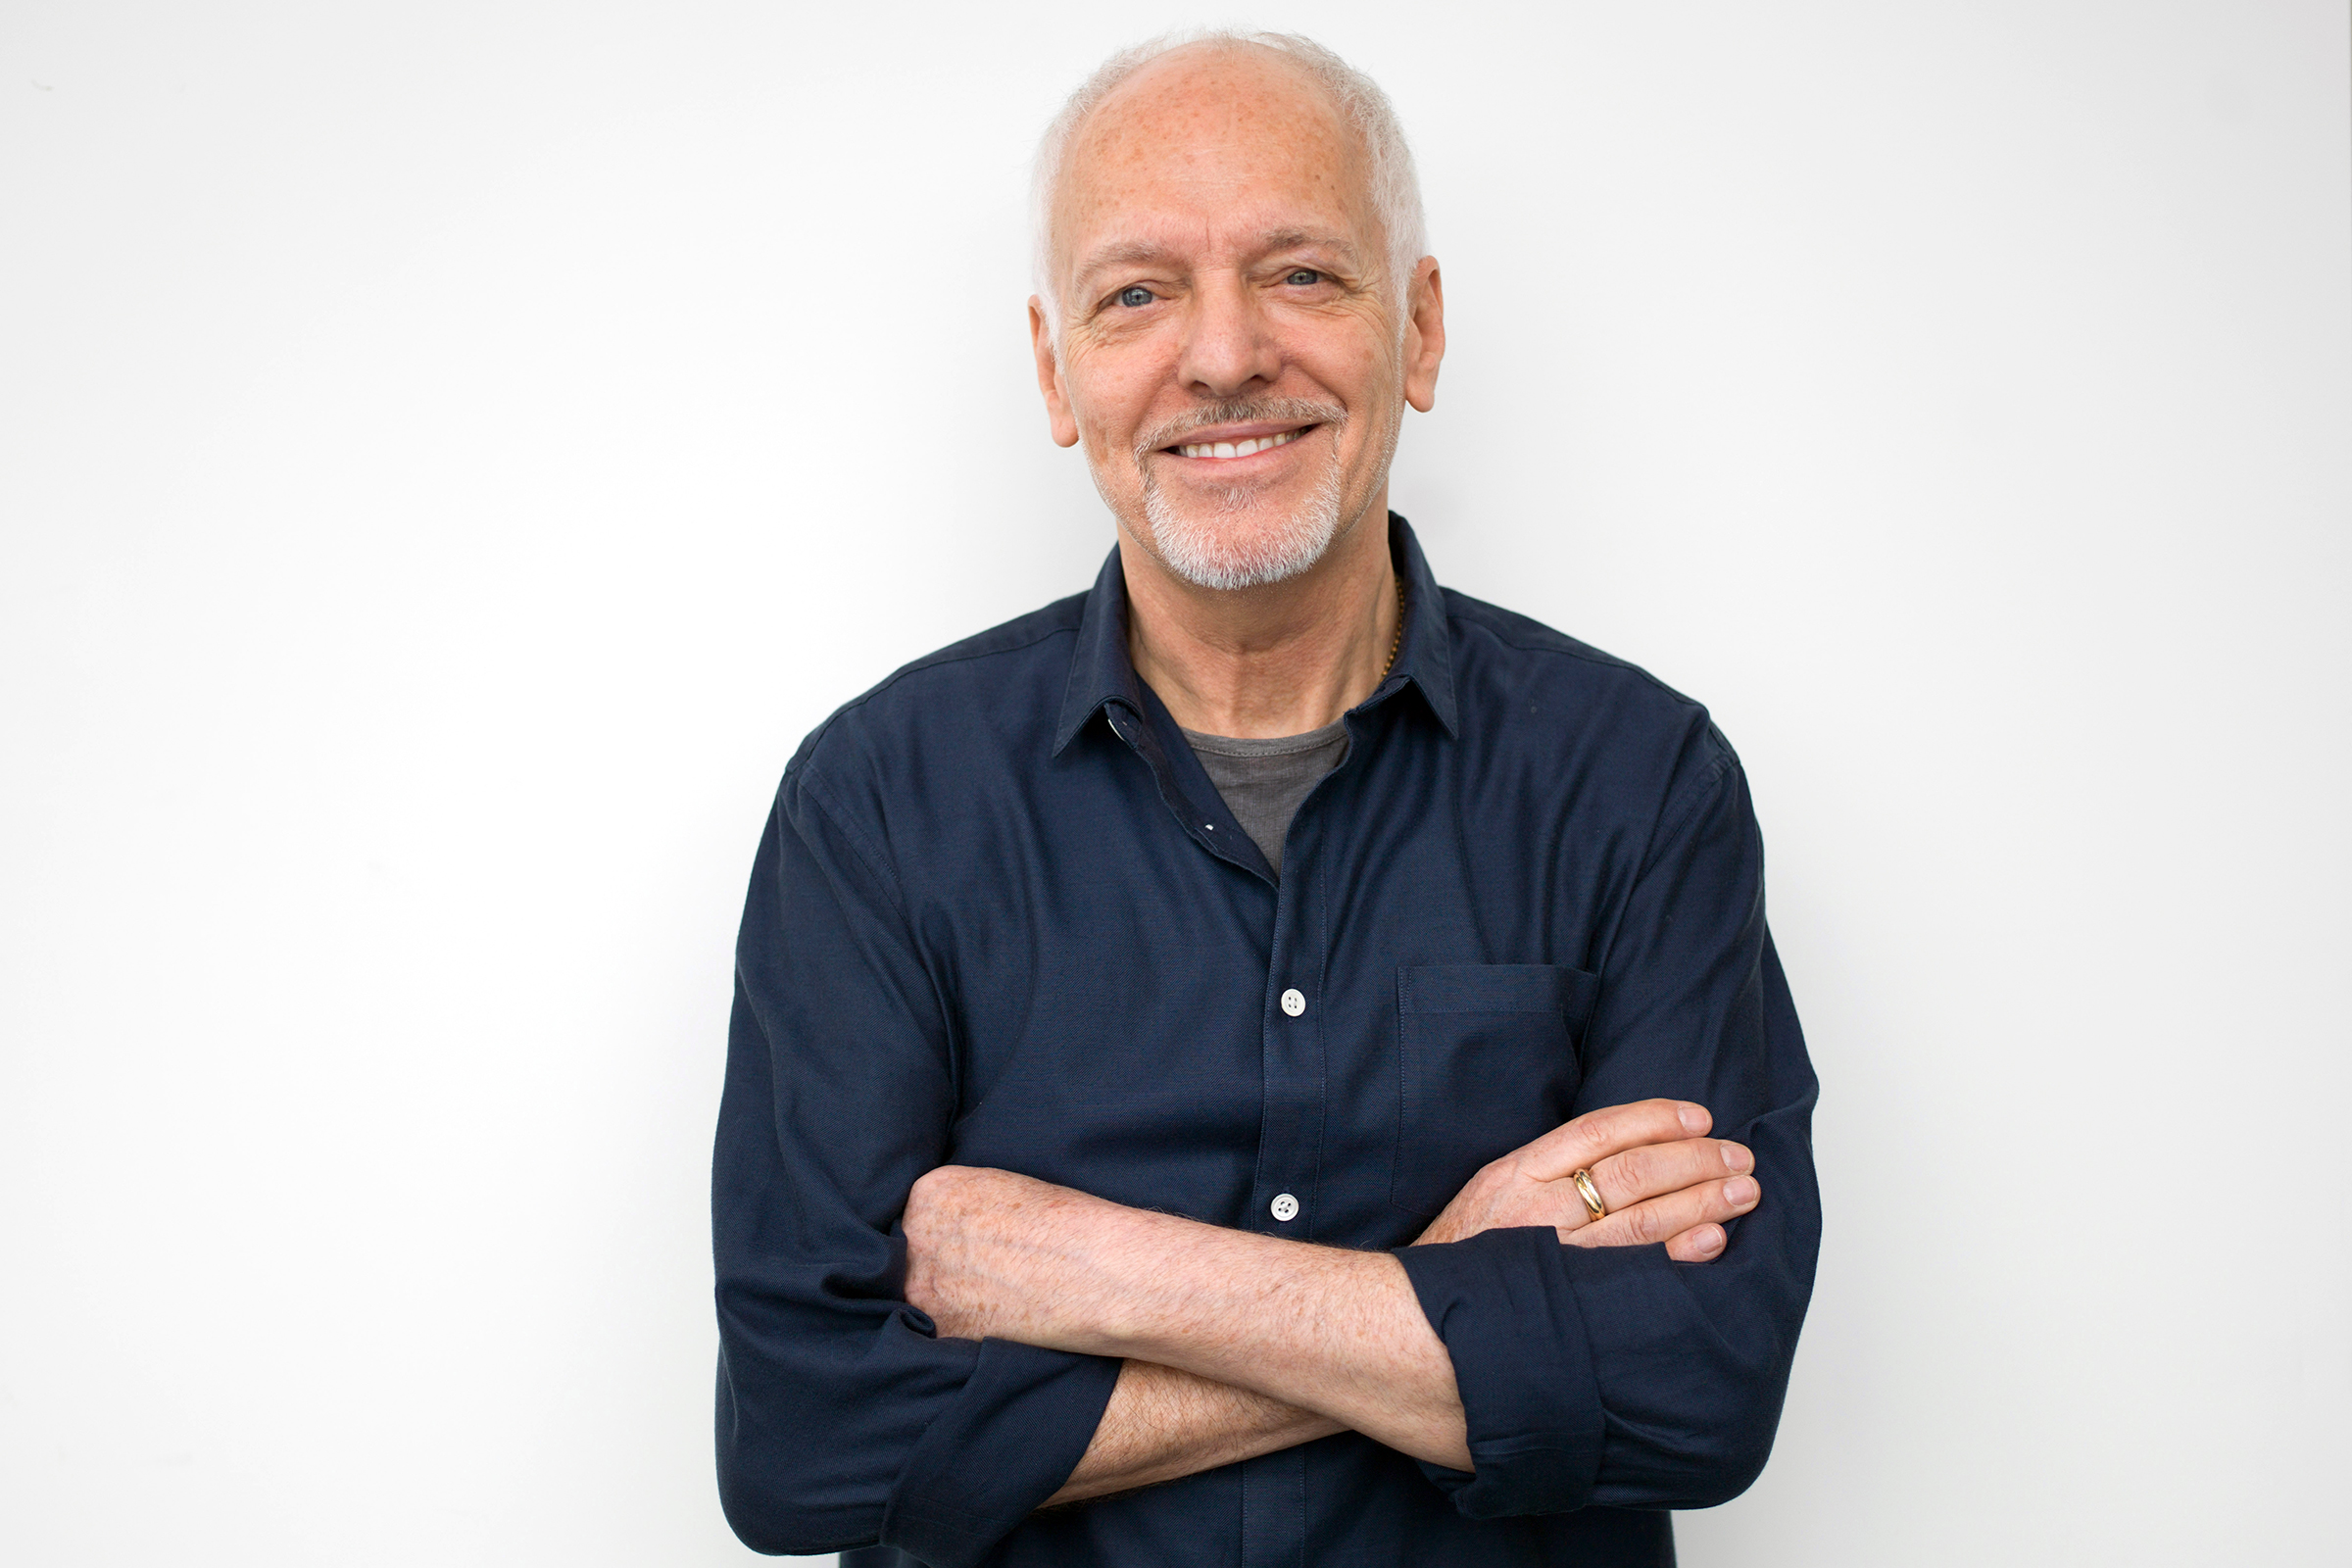 Musician Peter Frampton poses for a portrait in New York. The English-born Frampton, now 65, released, Acoustic Classics, a CD of stripped-down versions of his best-known songs, in FebruaryPeter Frampton Portrait Session, New York, USA - 25 Feb 2016